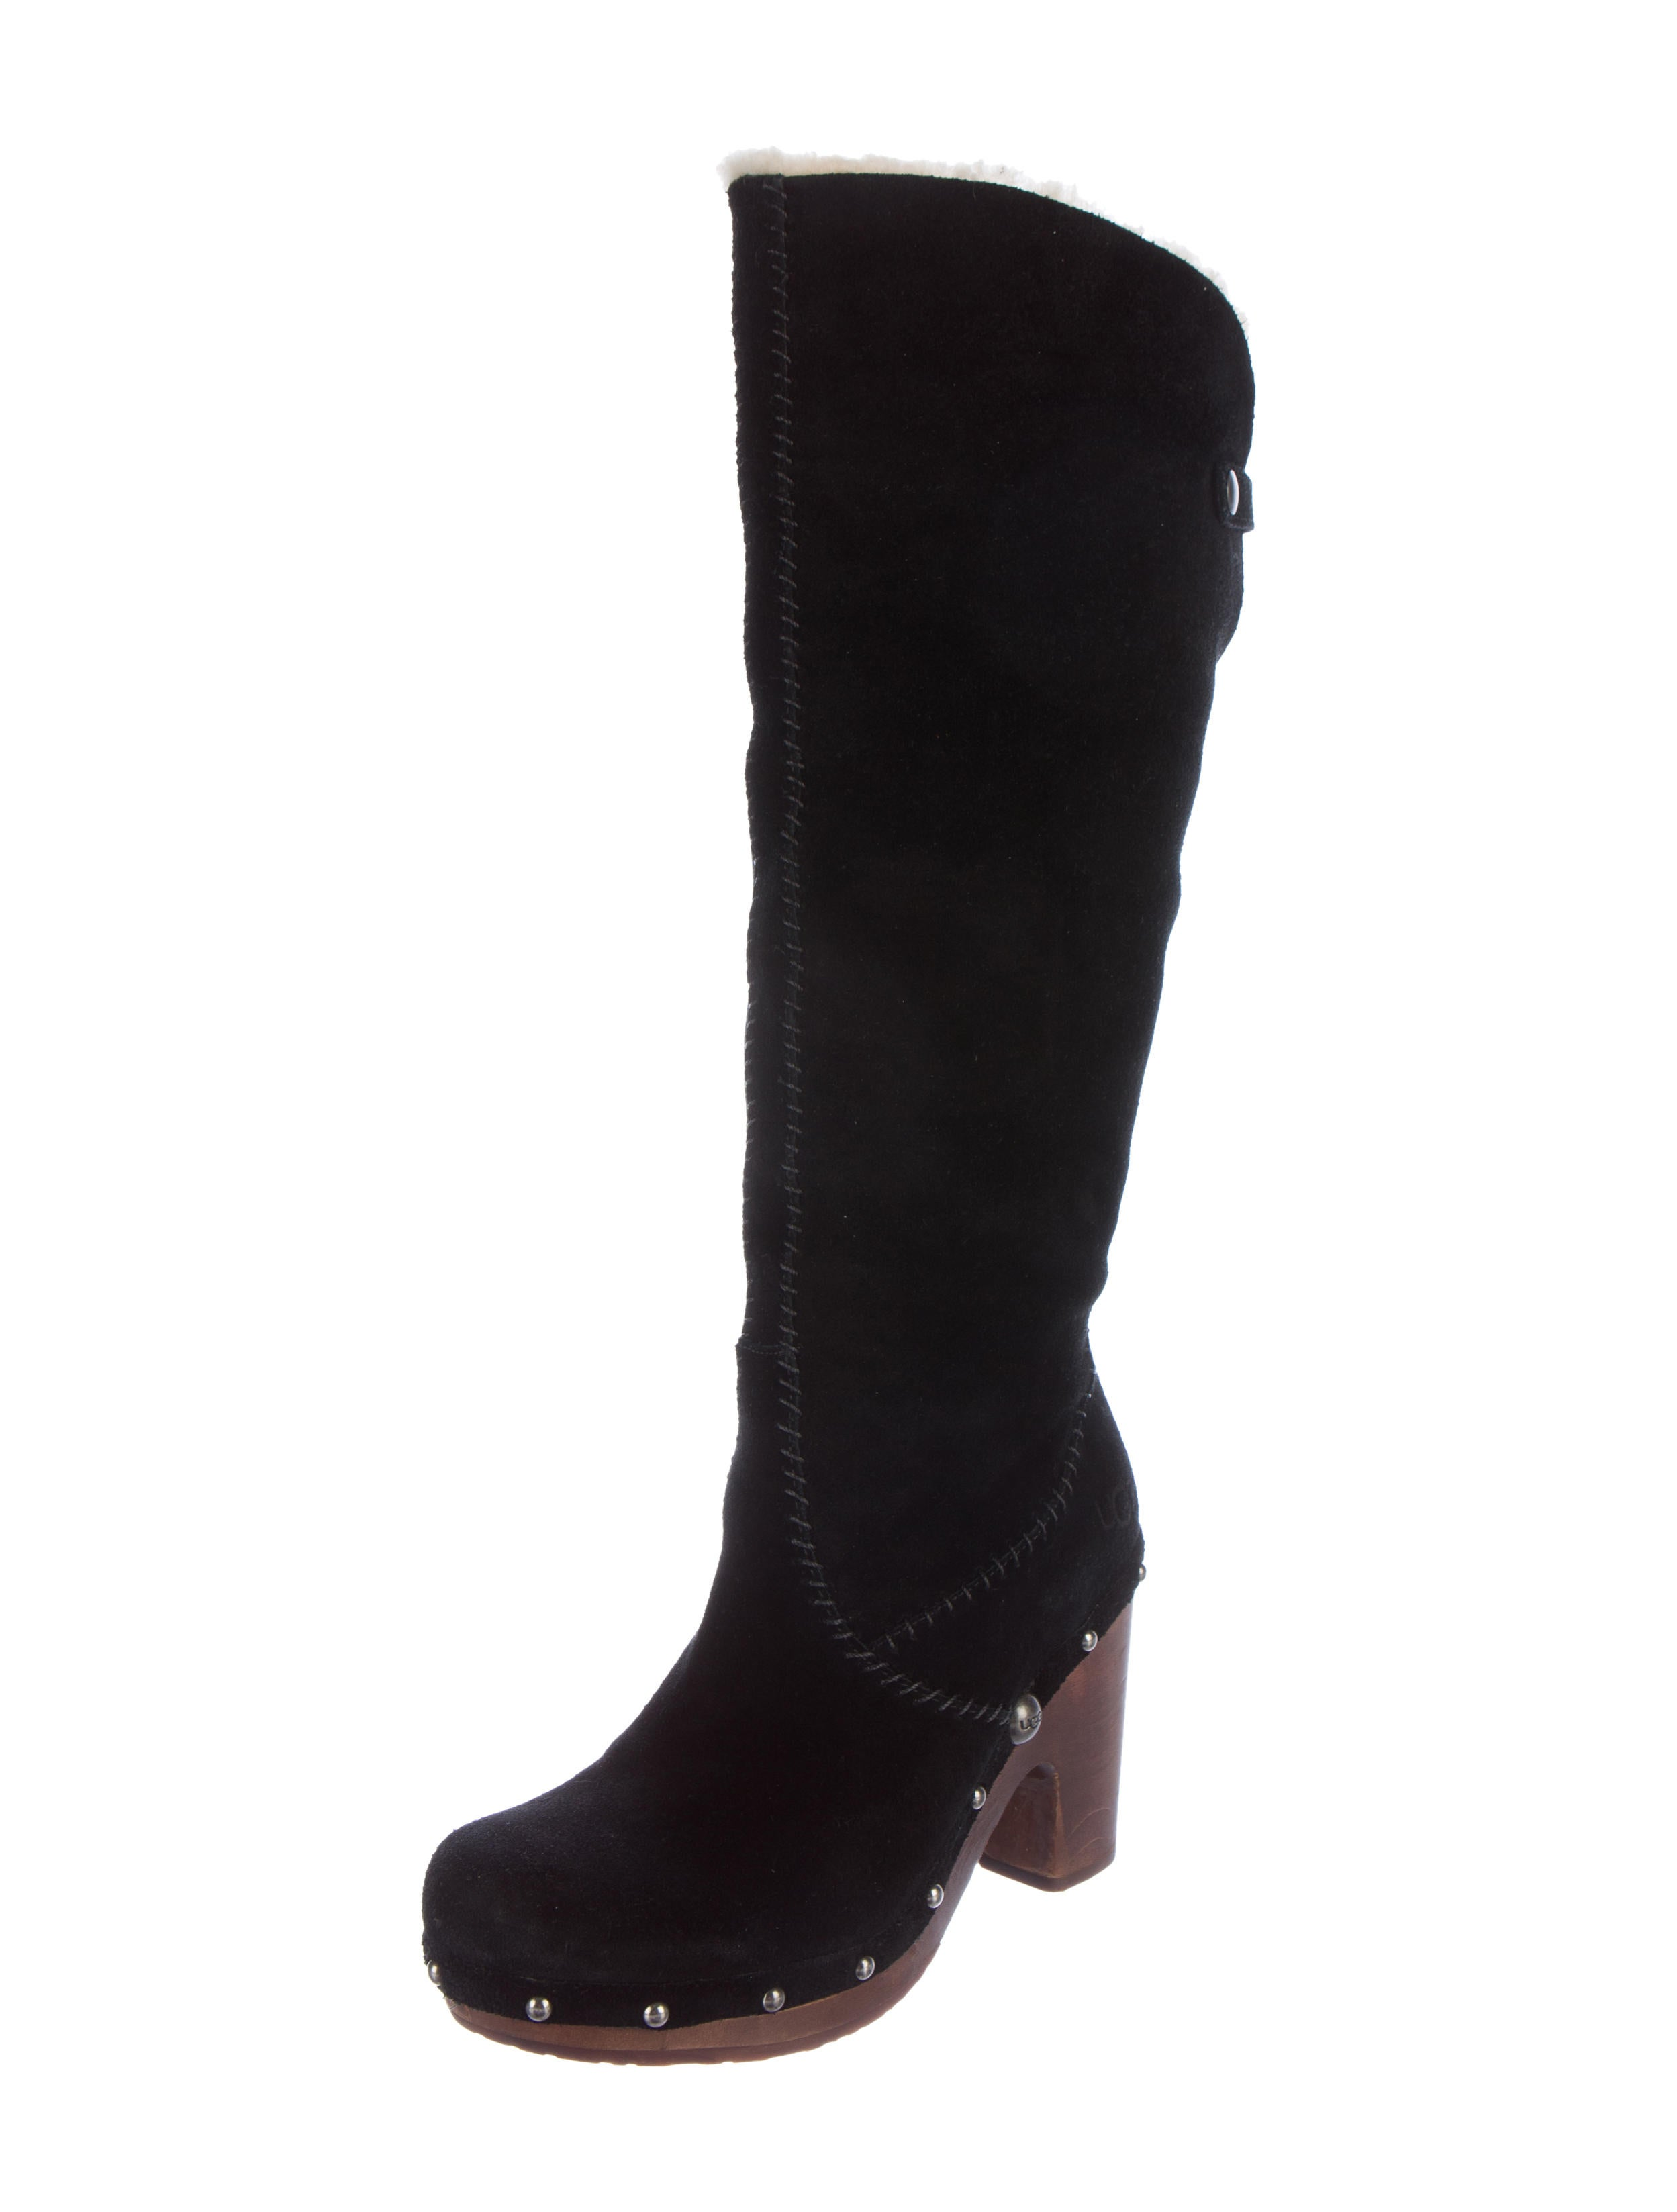 ugg australia suede leather knee high boots shoes